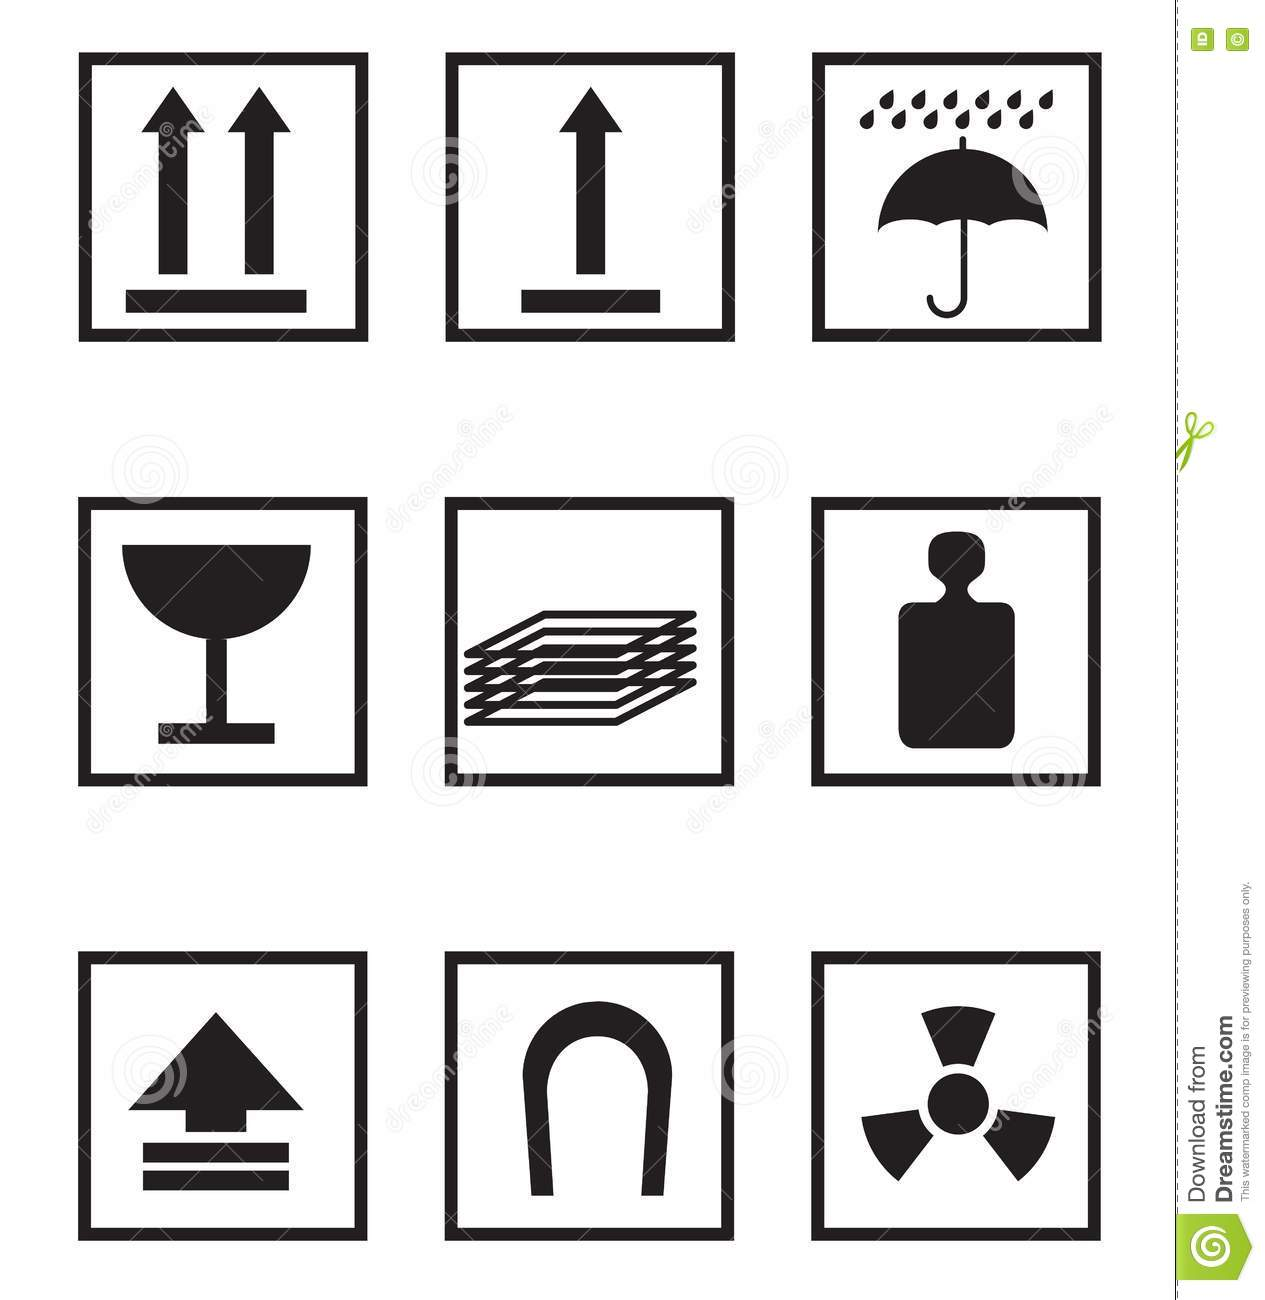 Package Symbols Royalty Free Stock Photography